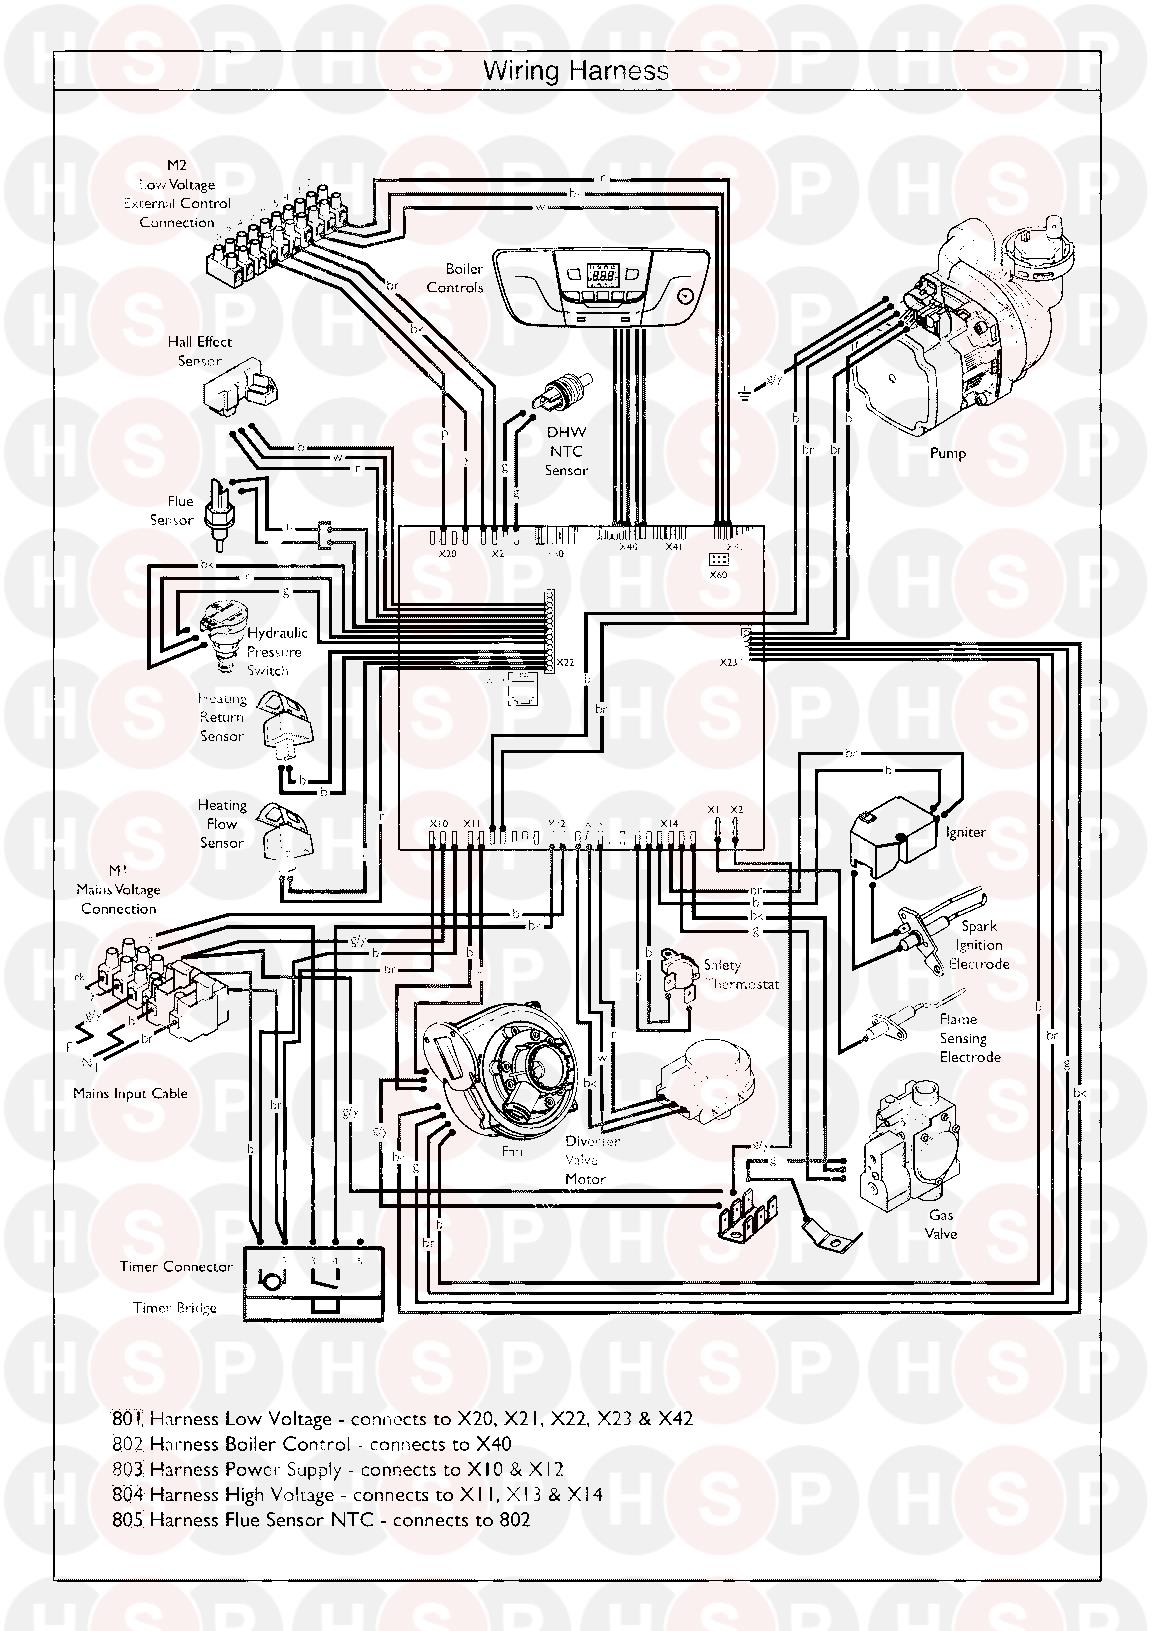 Baxi Advance Combi 24 Erp Wiring Harness Diagram Heating Spare Parts X10 Click The To Open It On A New Page